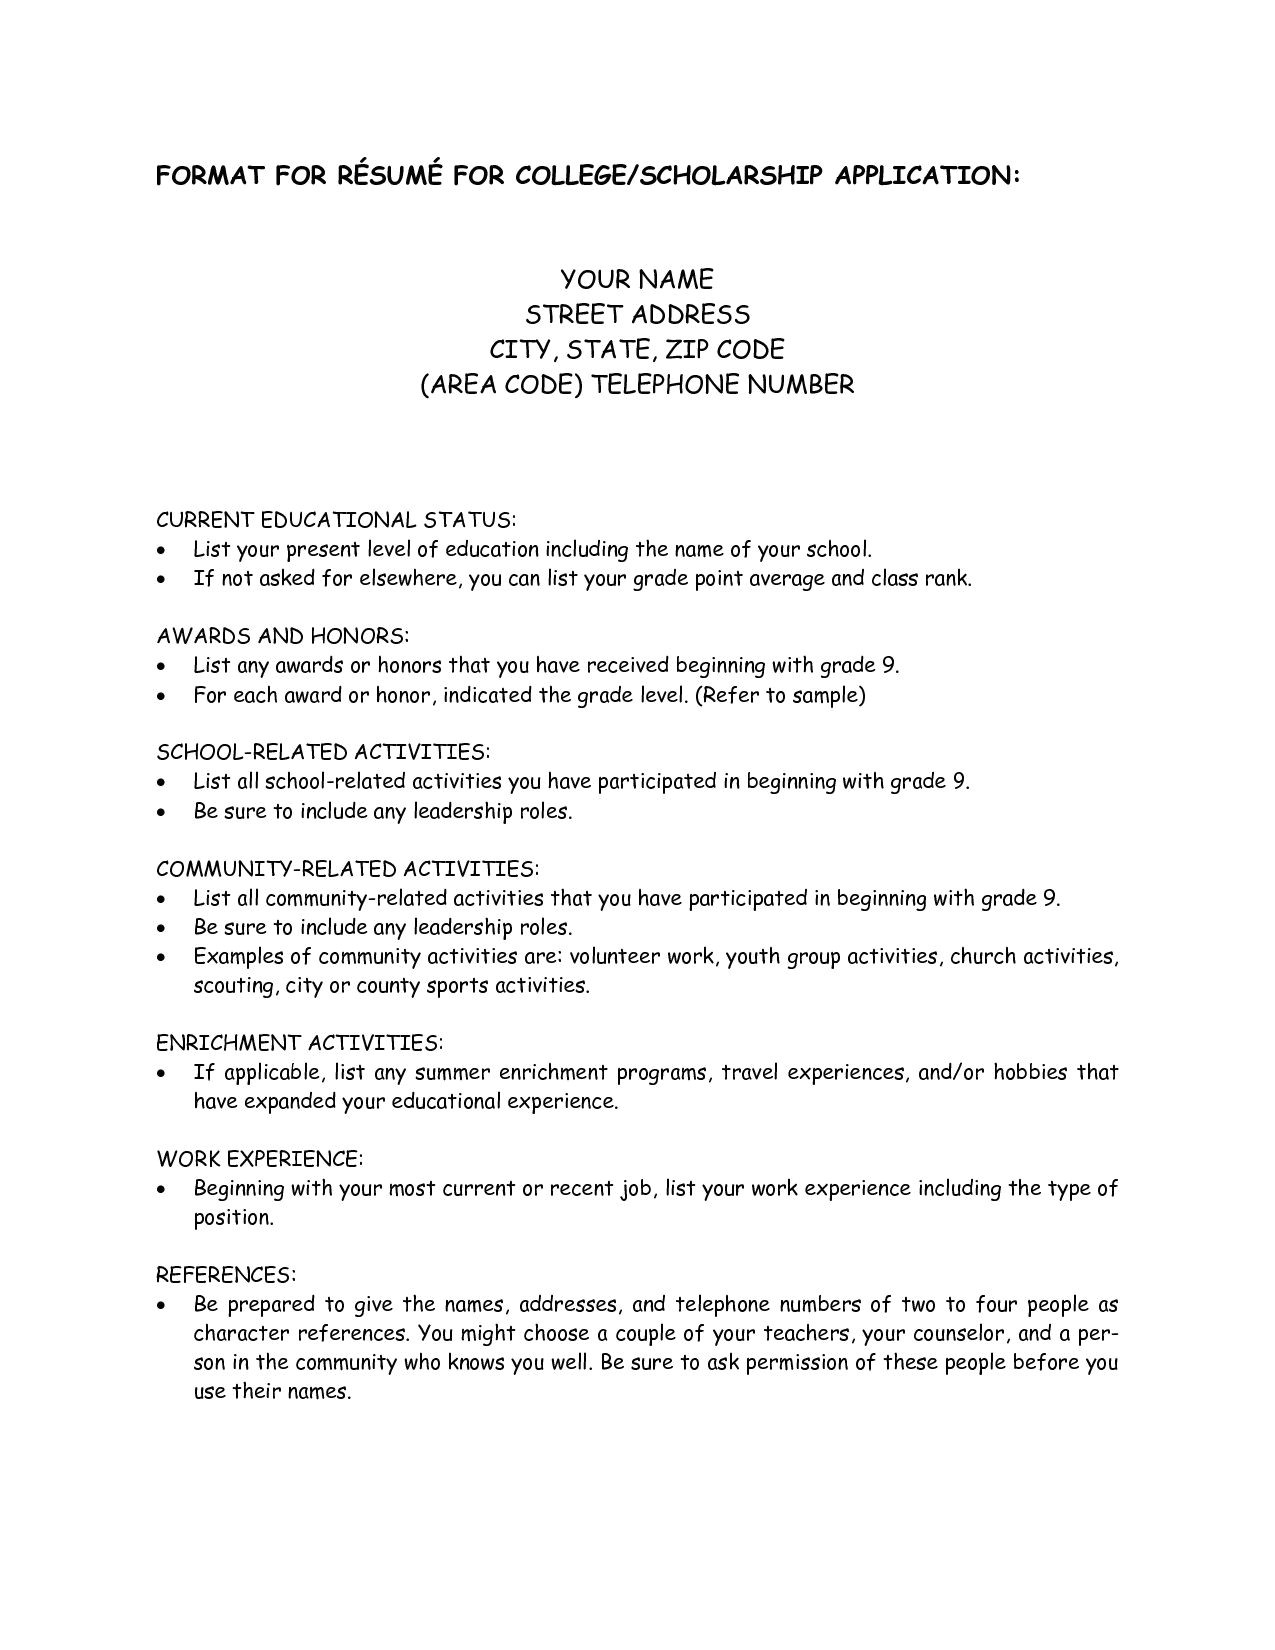 Sample Resume for High School Students Applying for Scholarships College Scholarship Resume Template 1197 Http